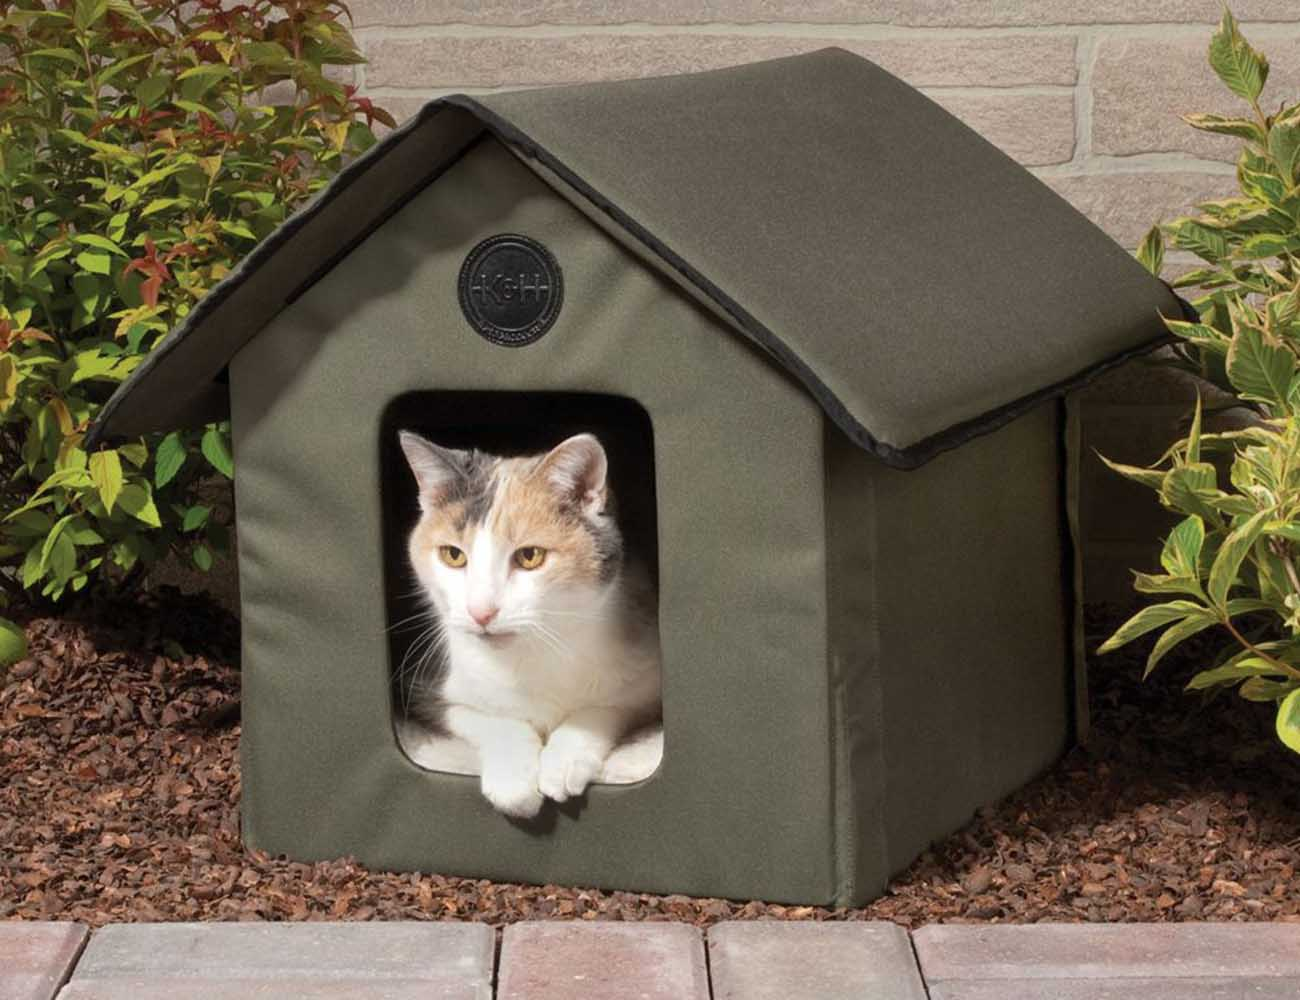 Outdoor Kitty House – Heated and Water-Resistant Version by K&H Manufacturing